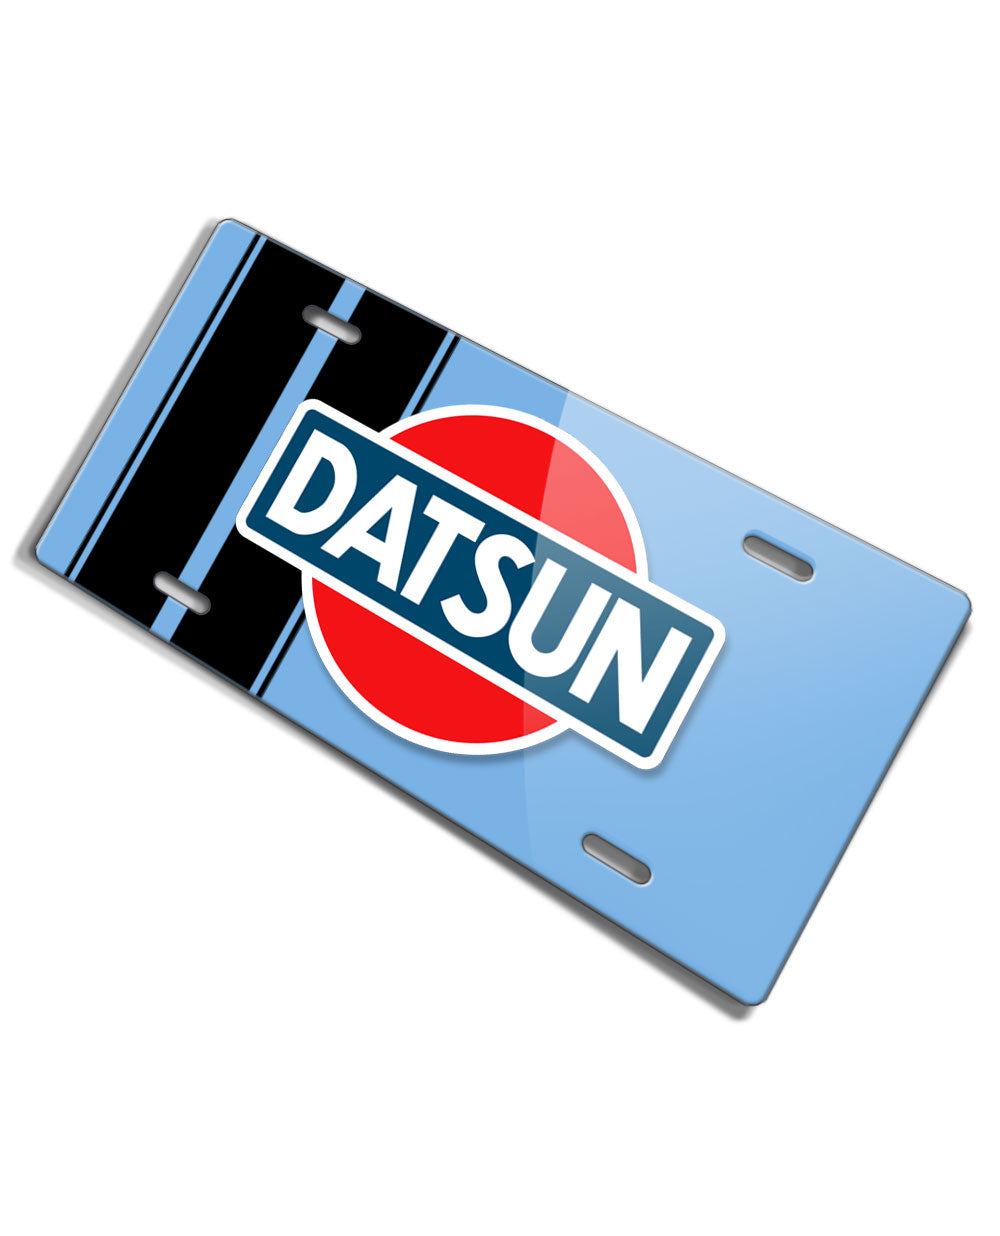 Datsun Emblem Novelty License Plate